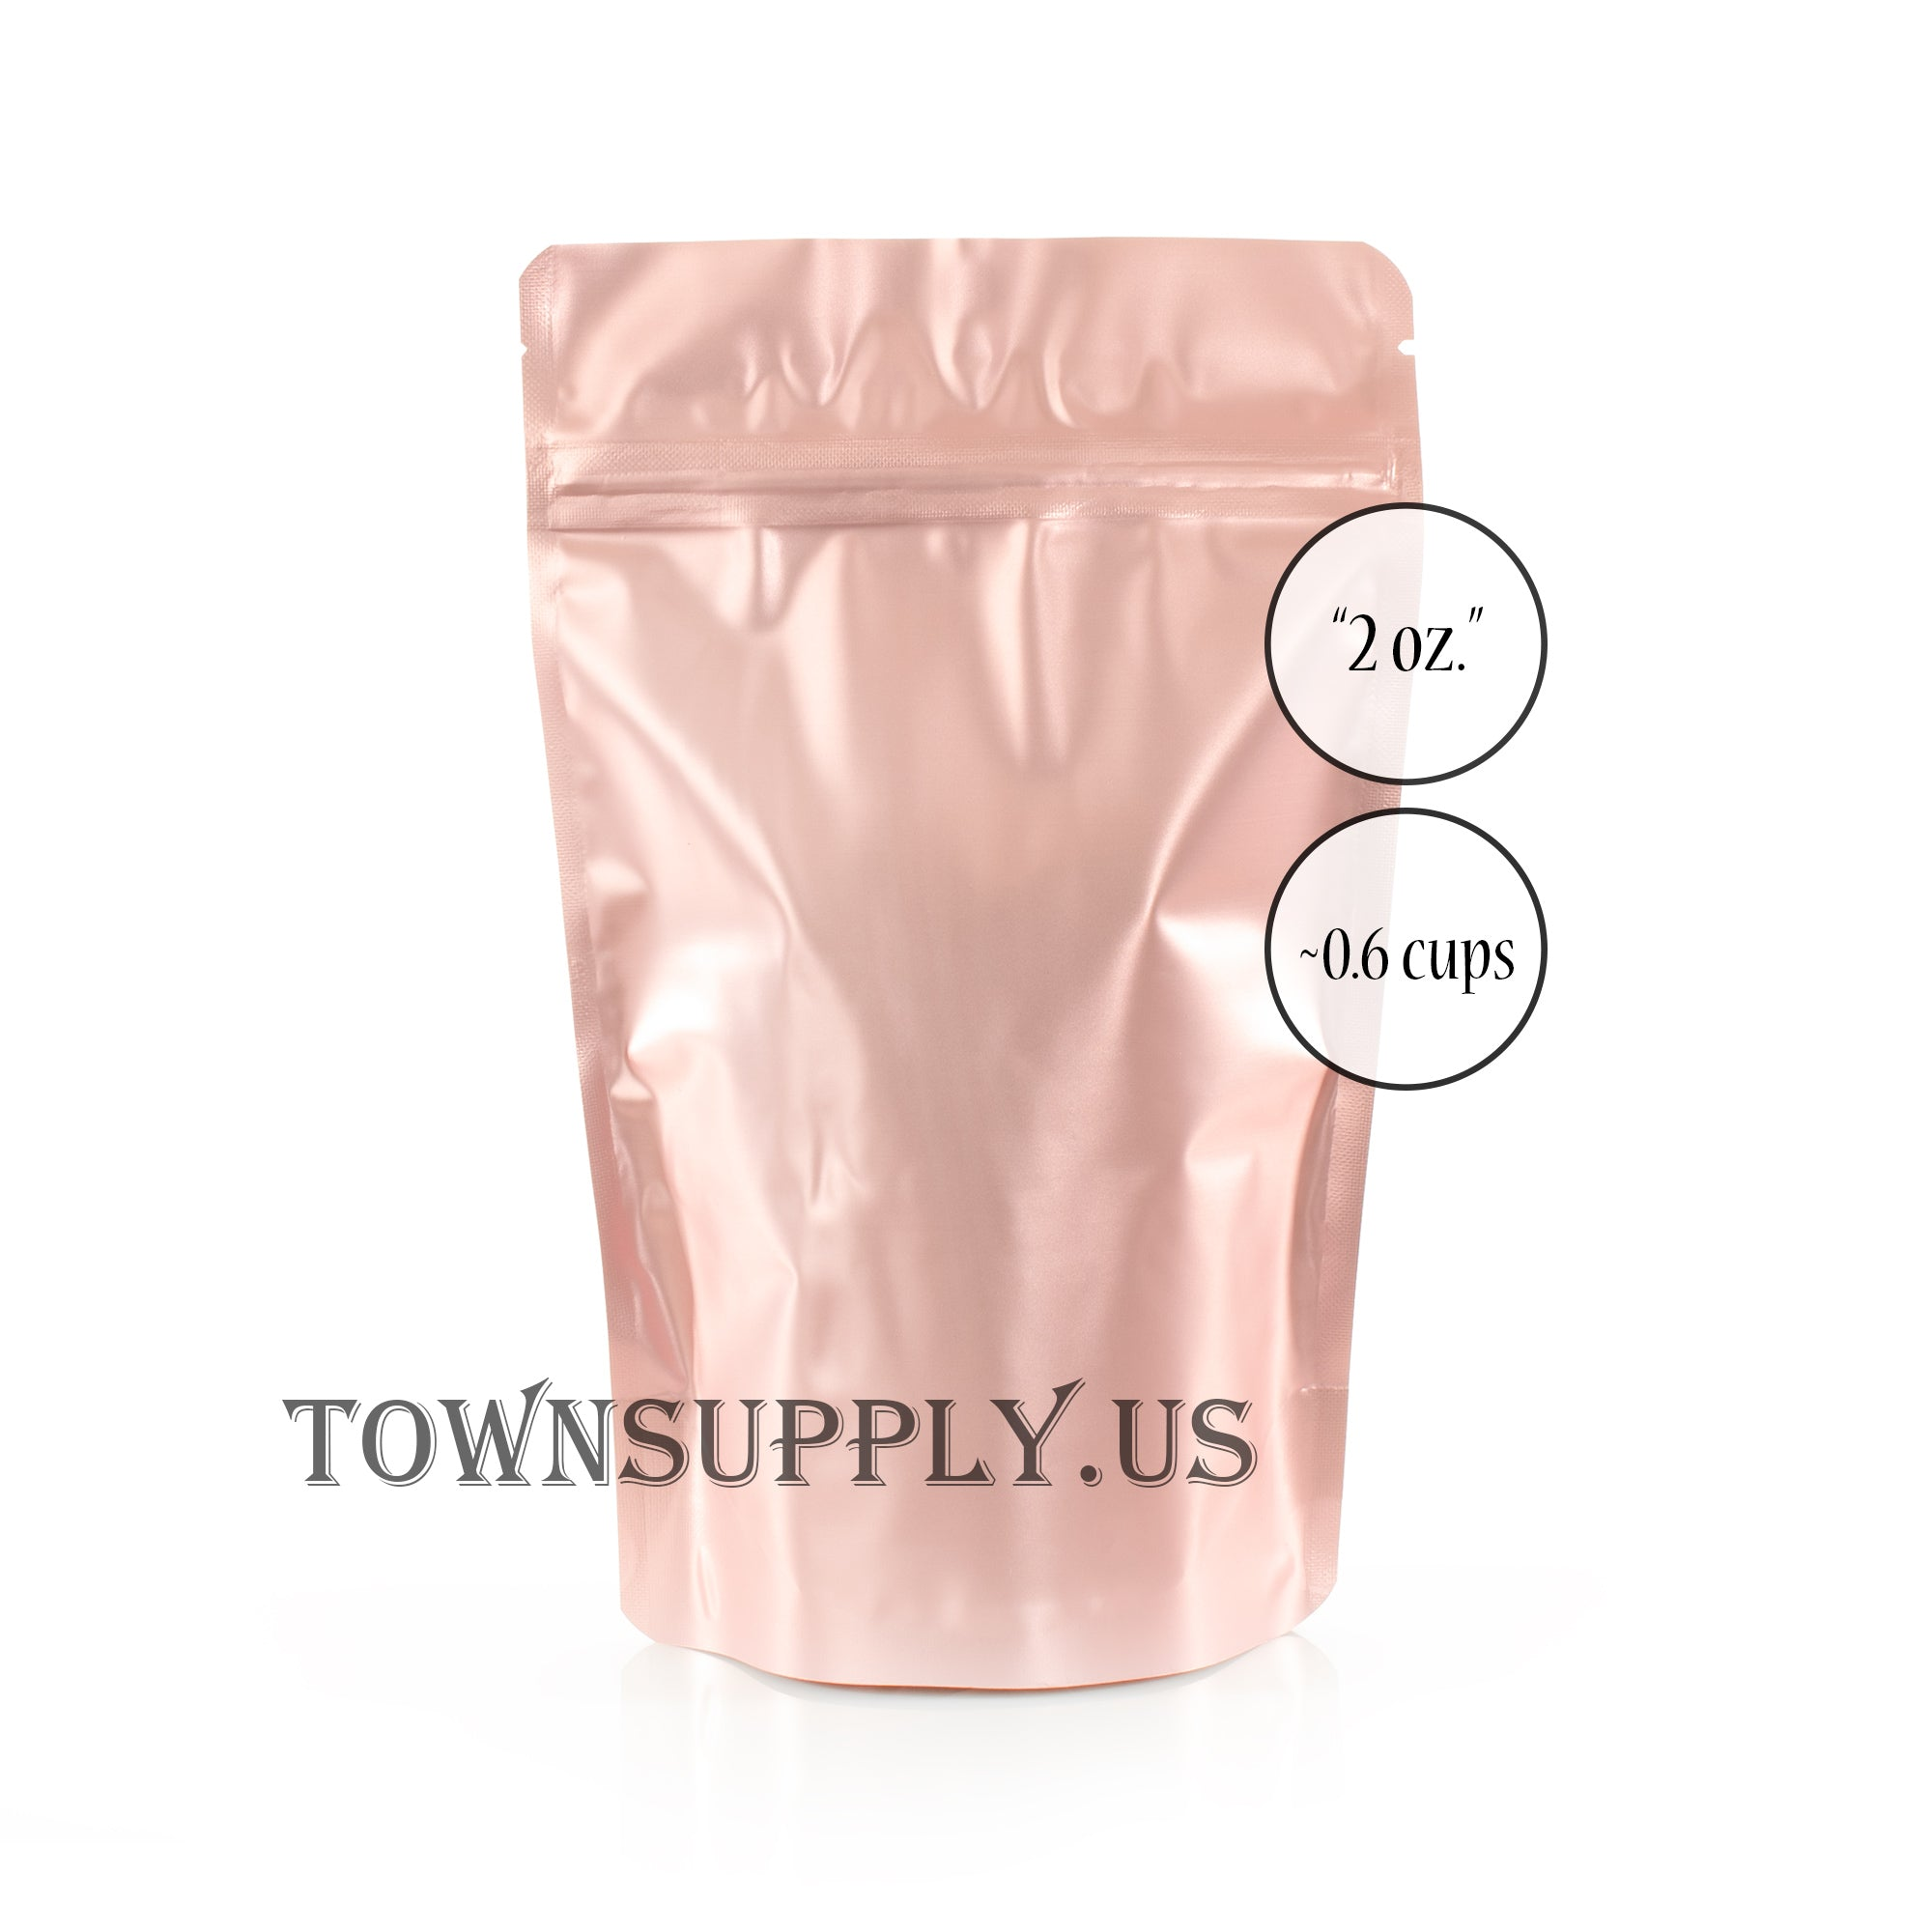 rose gold foil resealable stand up pouch, 2 oz. bags - Town Supply